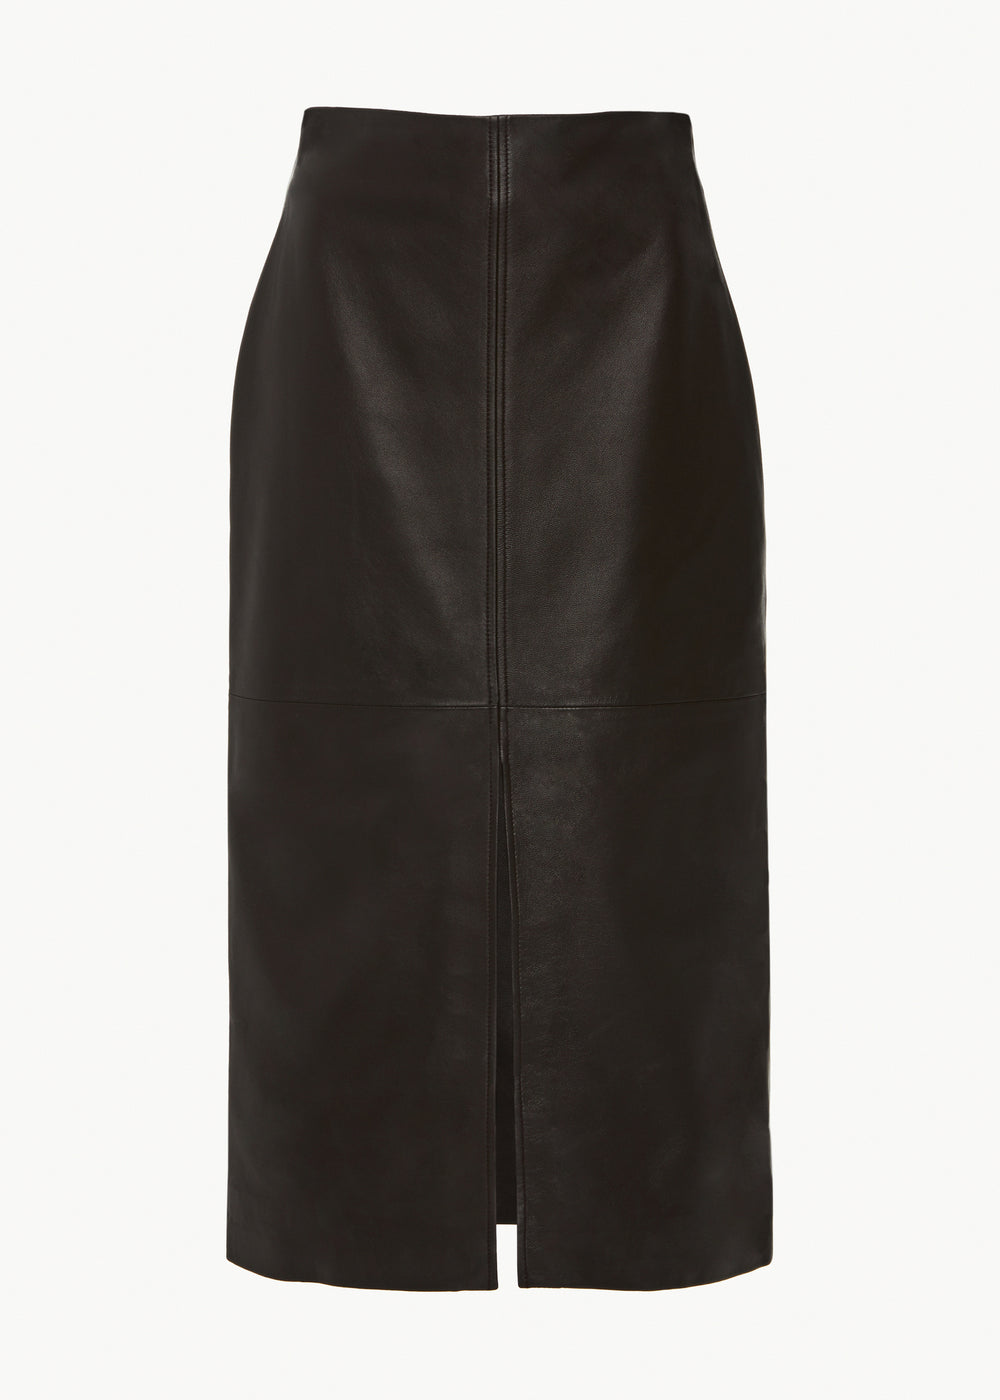 Front Slit Skirt in Leather - CO